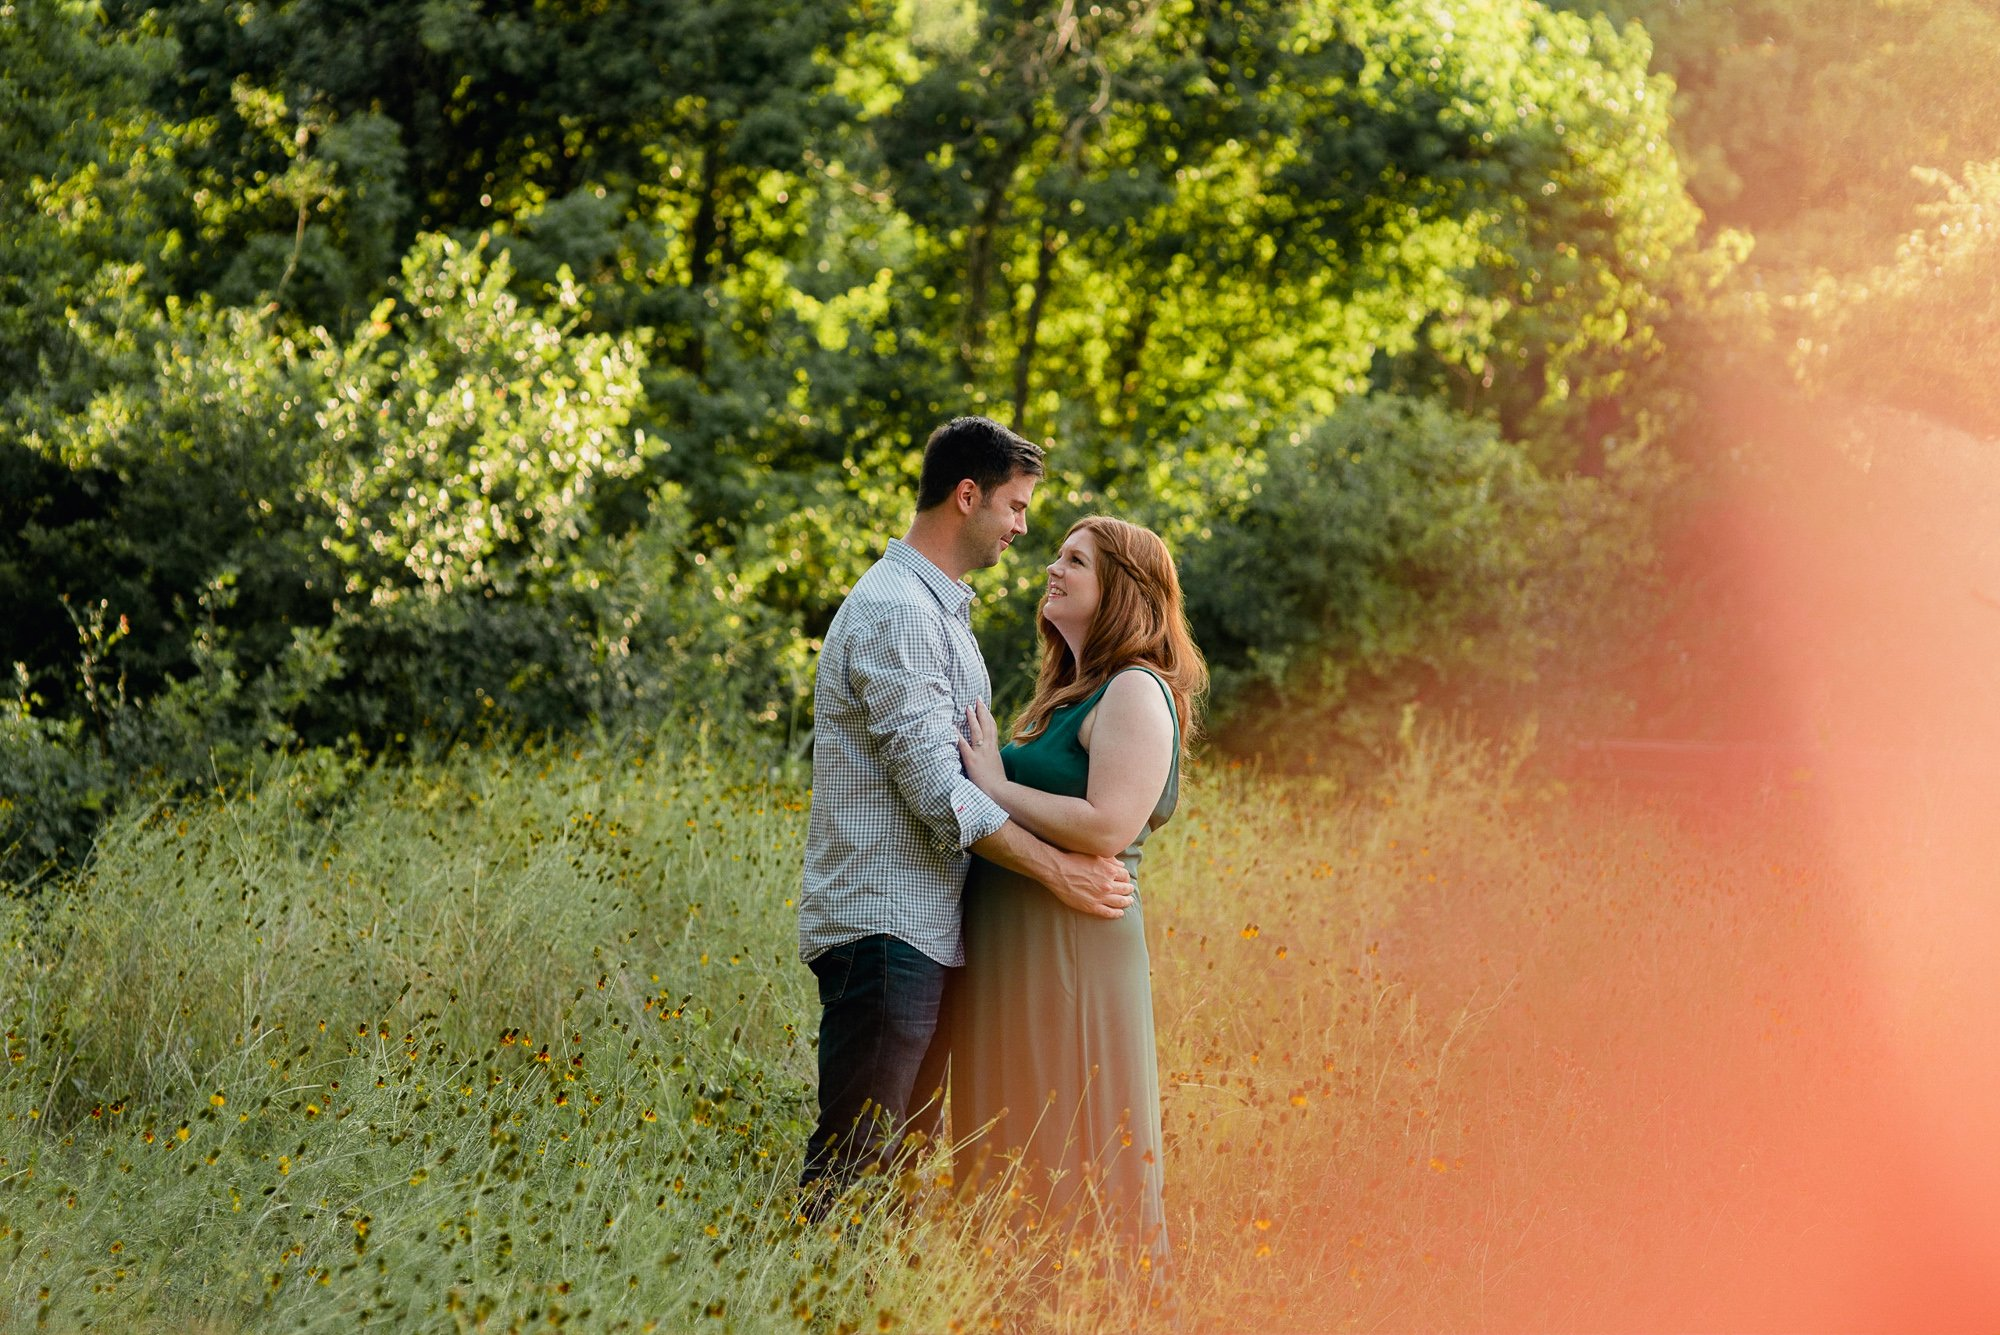 austin engagement session, brushy creek park engagement session, prism effect wedding portraits